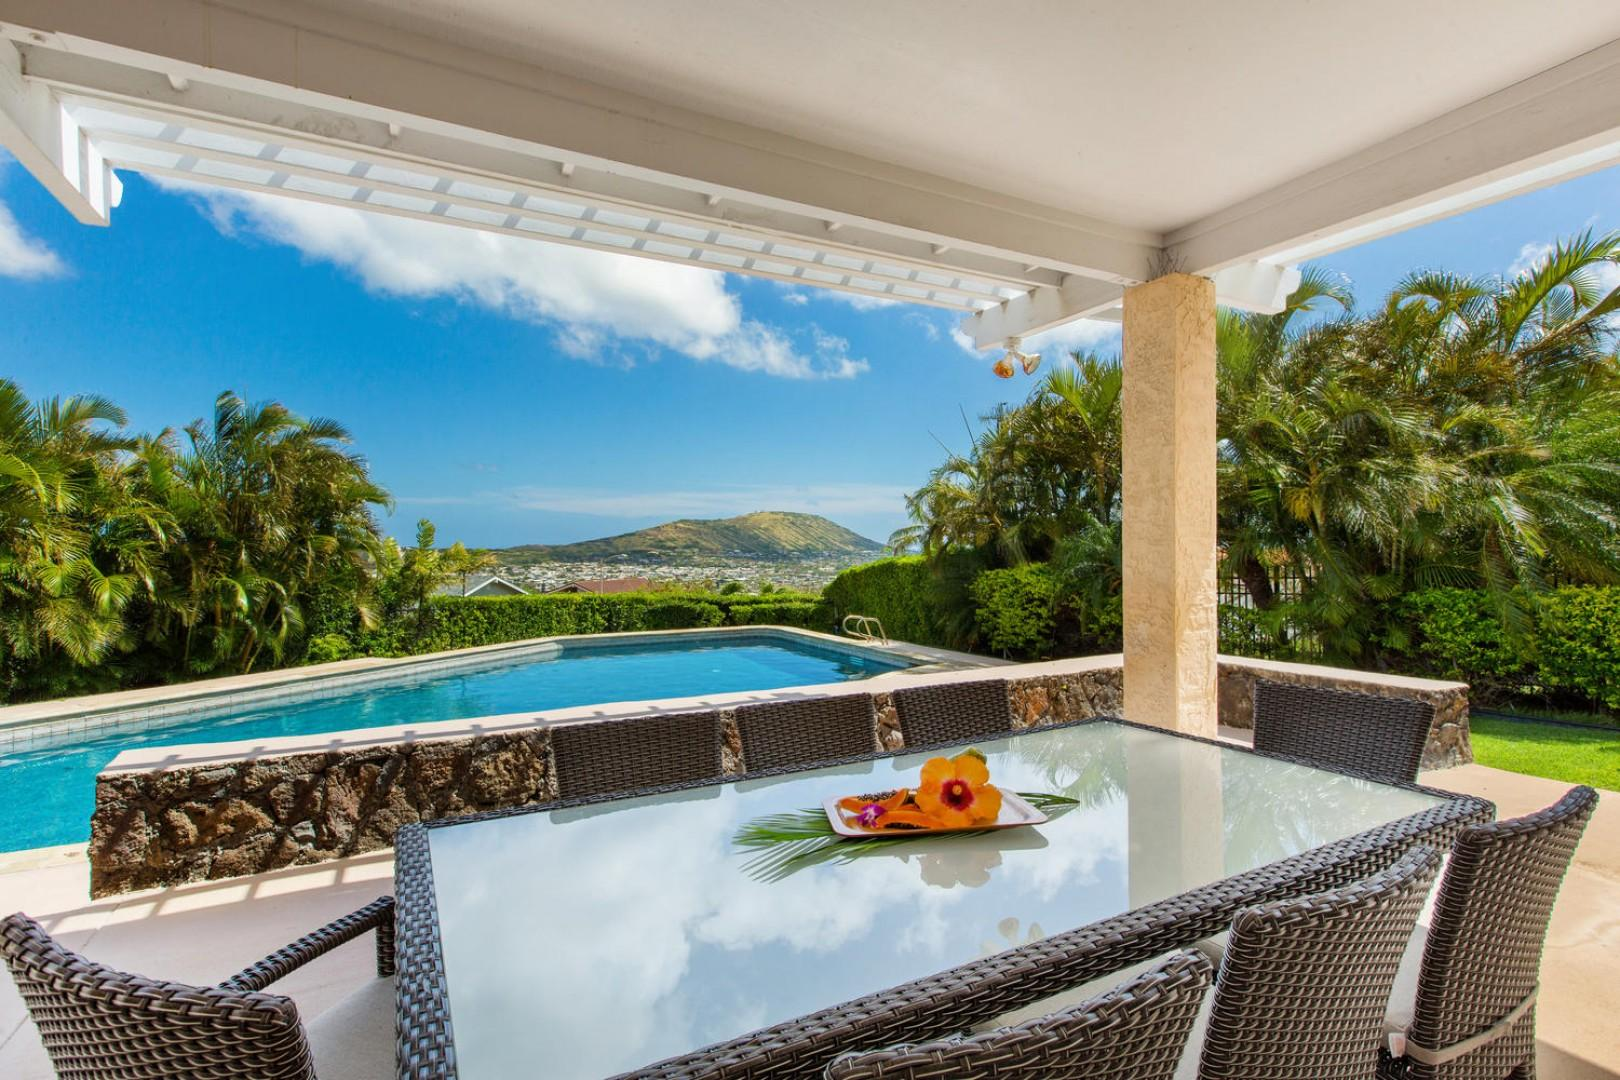 Outdoor seating by the pool overlooking Portlock and Koko Crater.